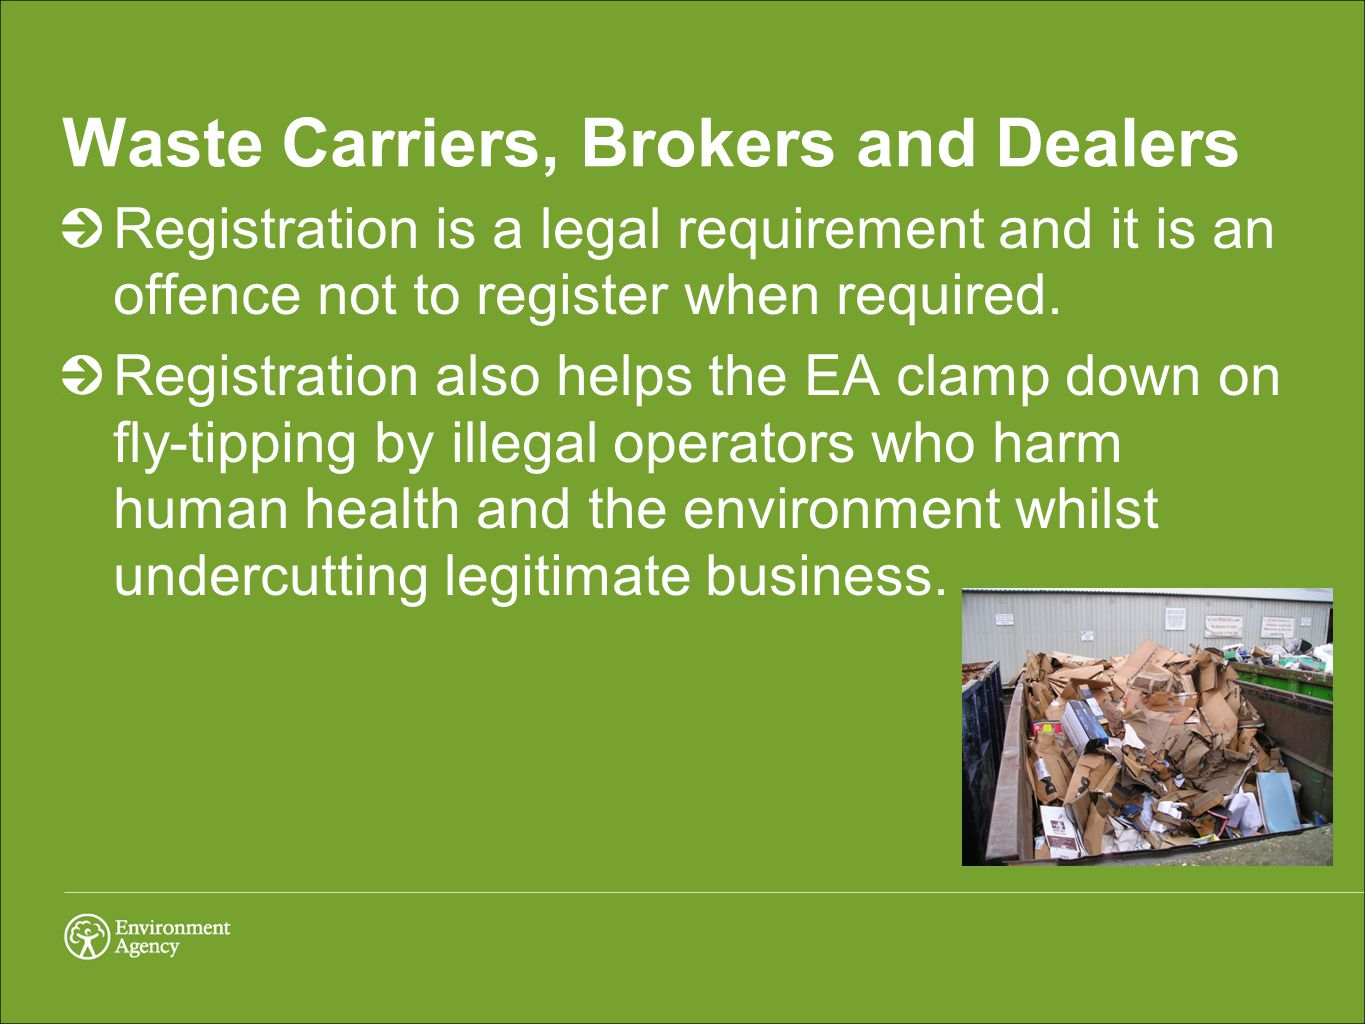 Waste Carriers, Brokers and Dealers Registration is a legal requirement and it is an offence not to register when required.